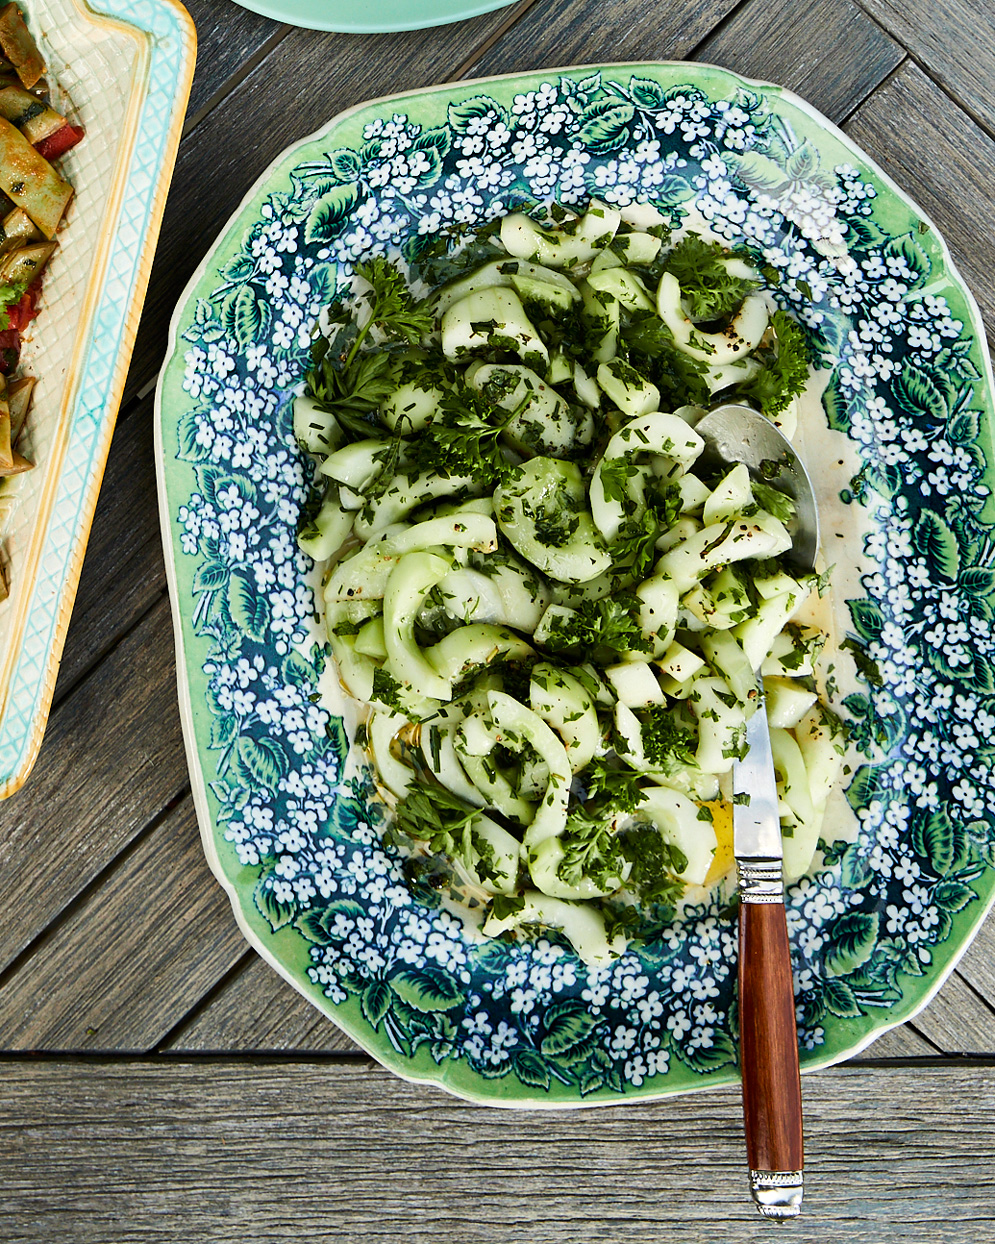 cucumber-herb salad served in floral-patterned dish